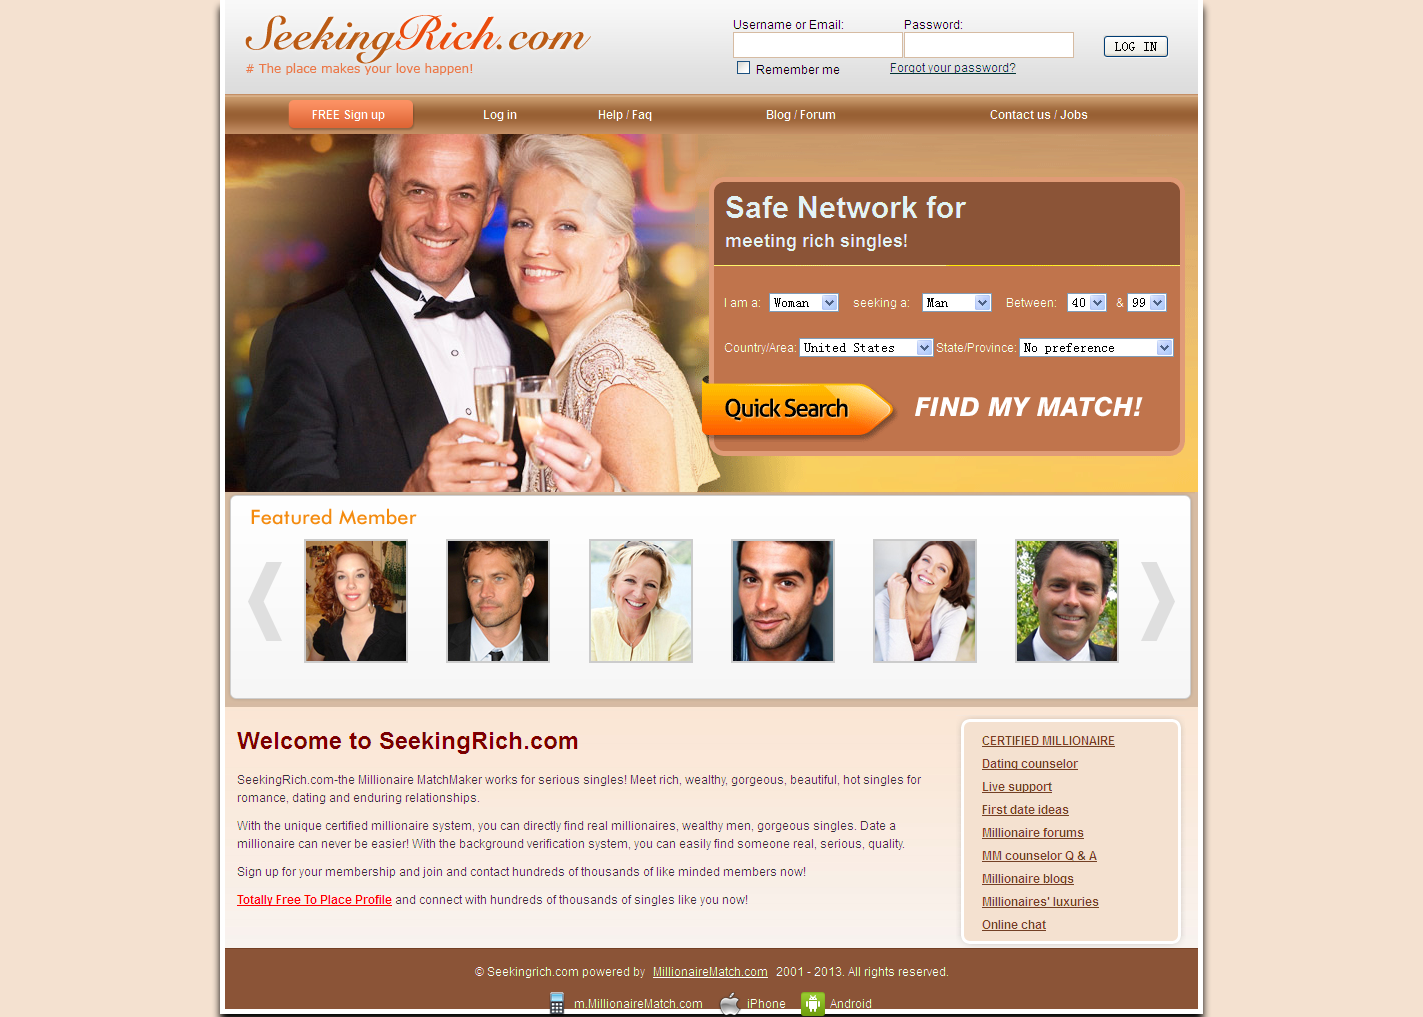 churchville singles dating site Churchville's best free dating site 100% free online dating for churchville singles at mingle2com our free personal ads are full of single women and men in churchville looking for serious relationships, a little online flirtation, or new friends to go out with.